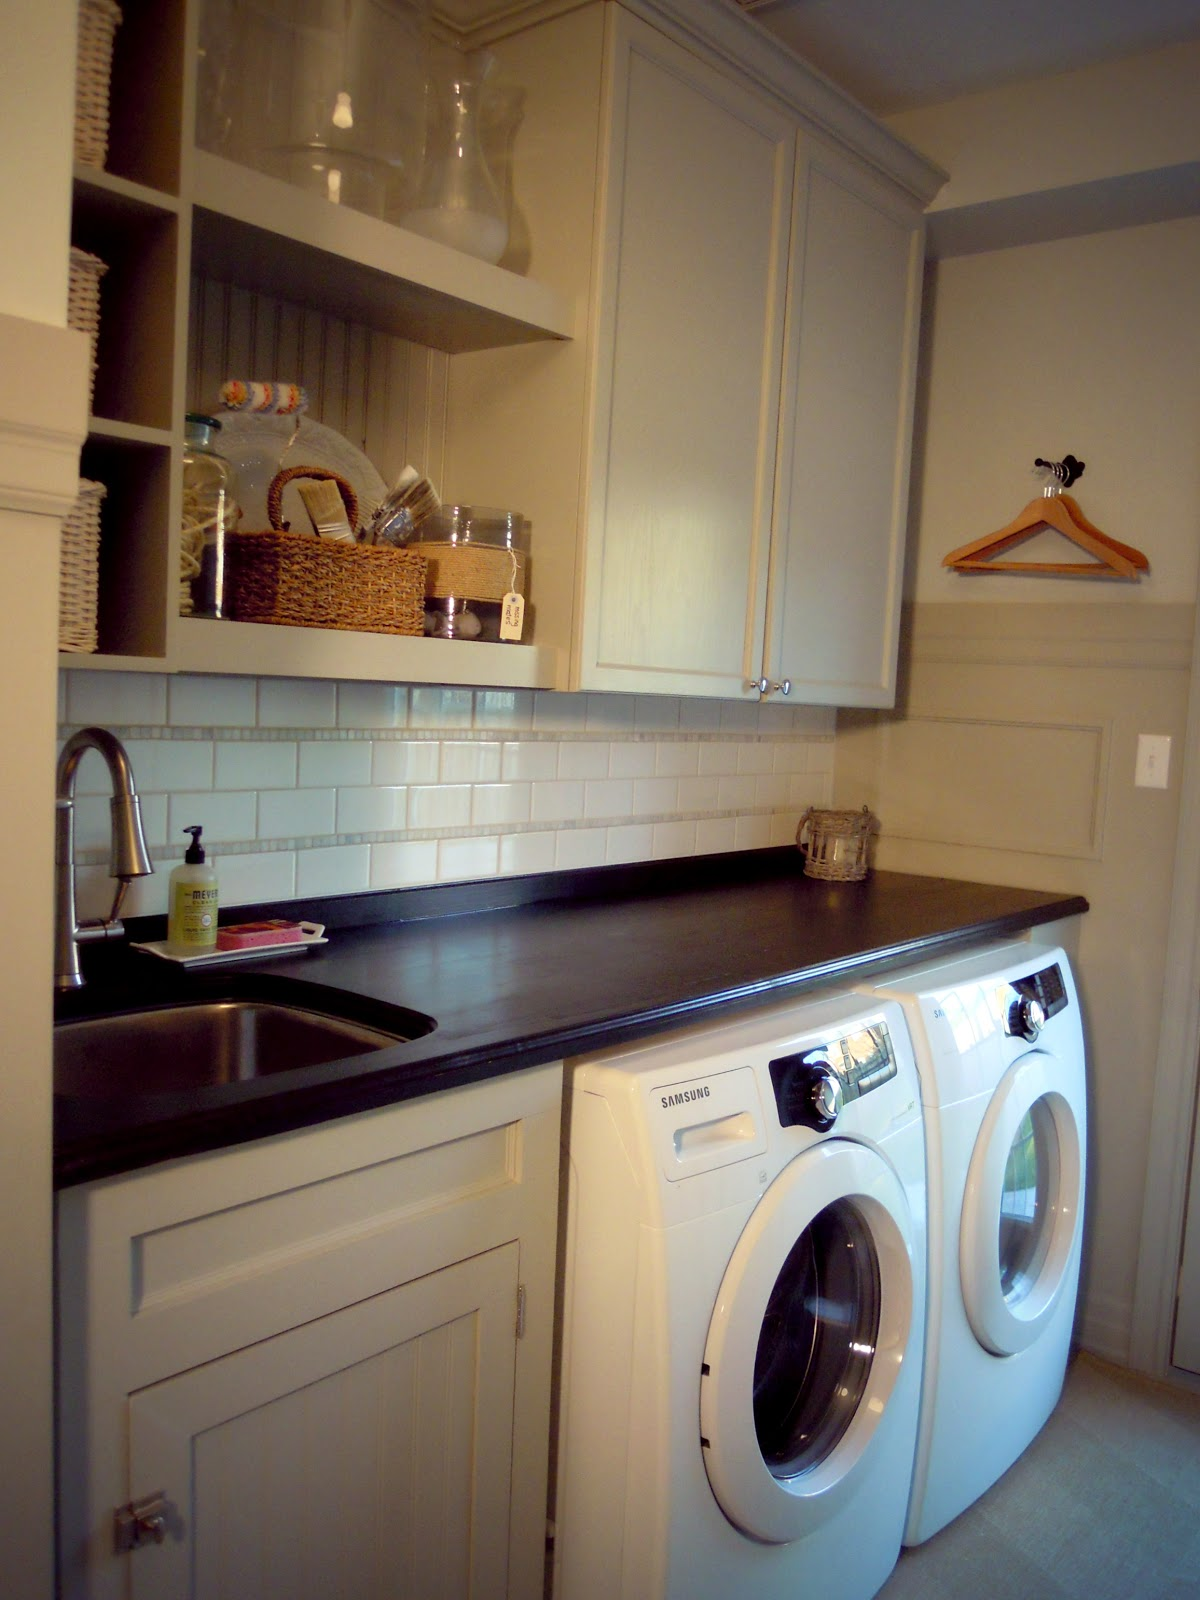 White Wood : Completed laundry room on Laundry Room Cabinets Ideas  id=23822